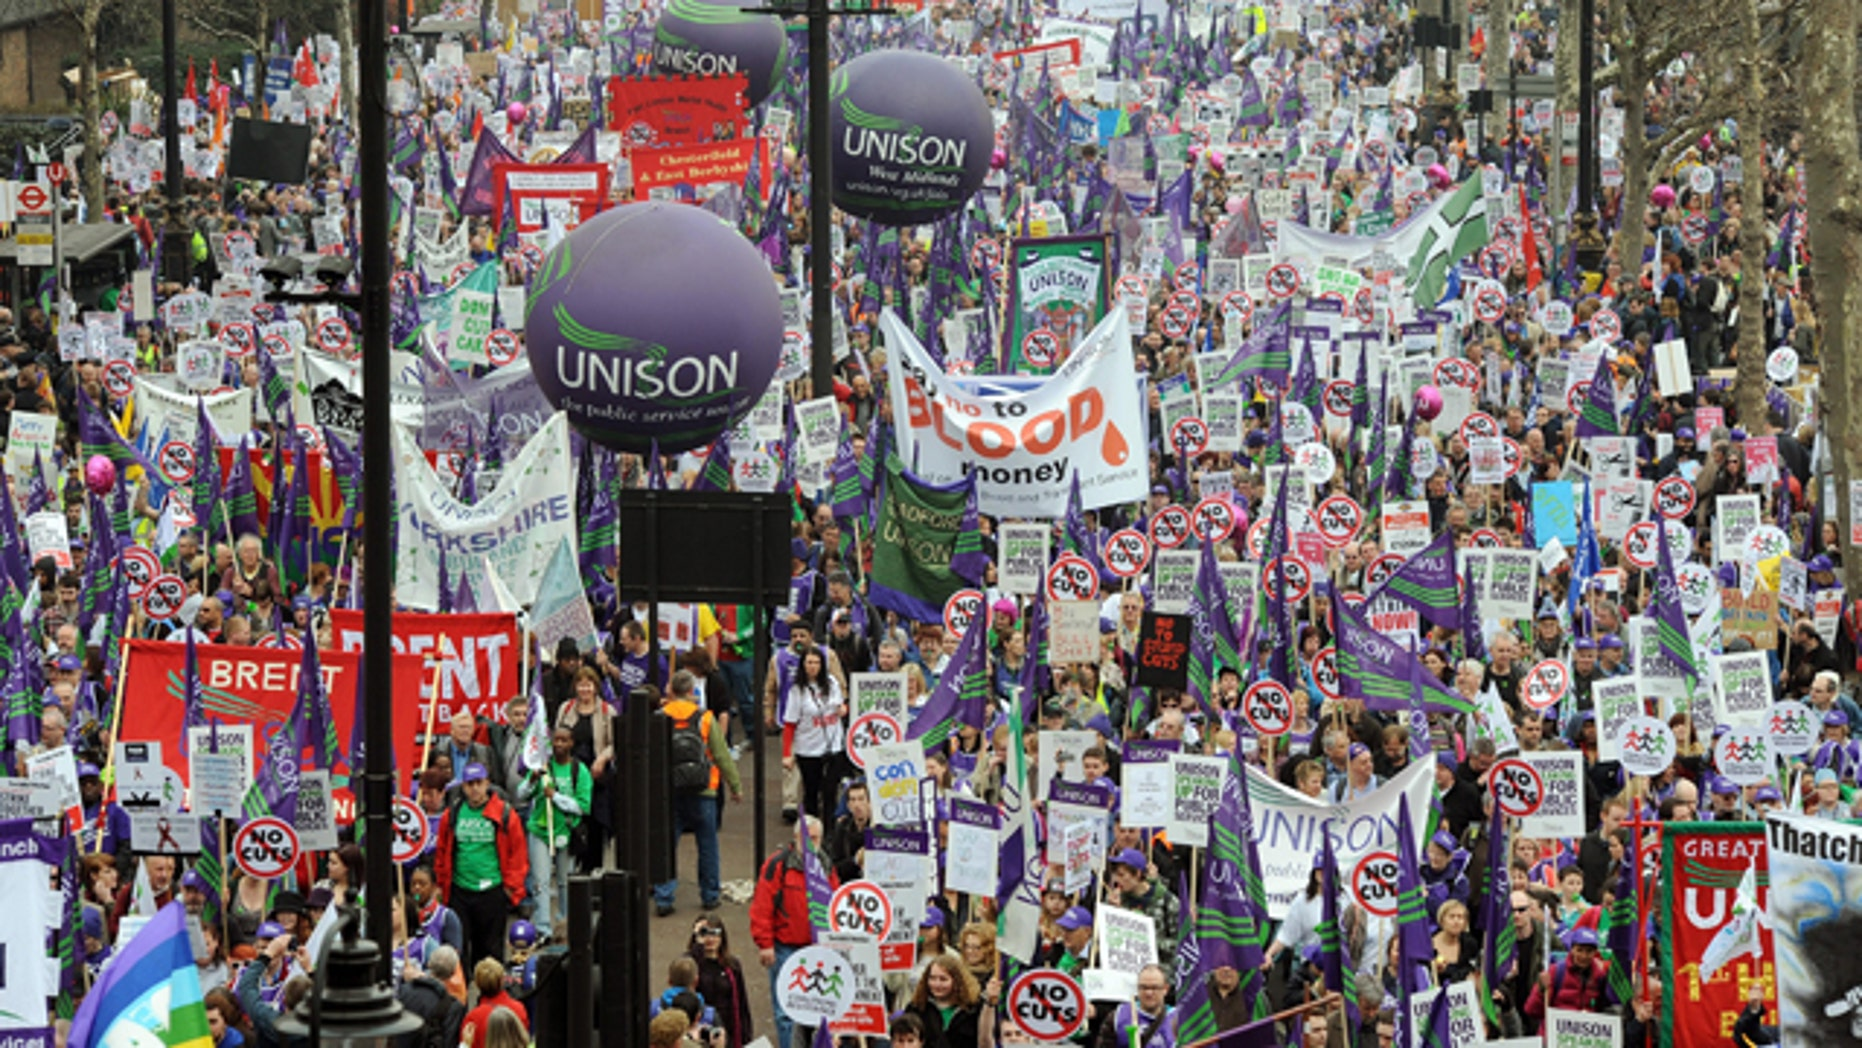 March 26: Demonstrators begin their march in London to protest against government spending cuts.